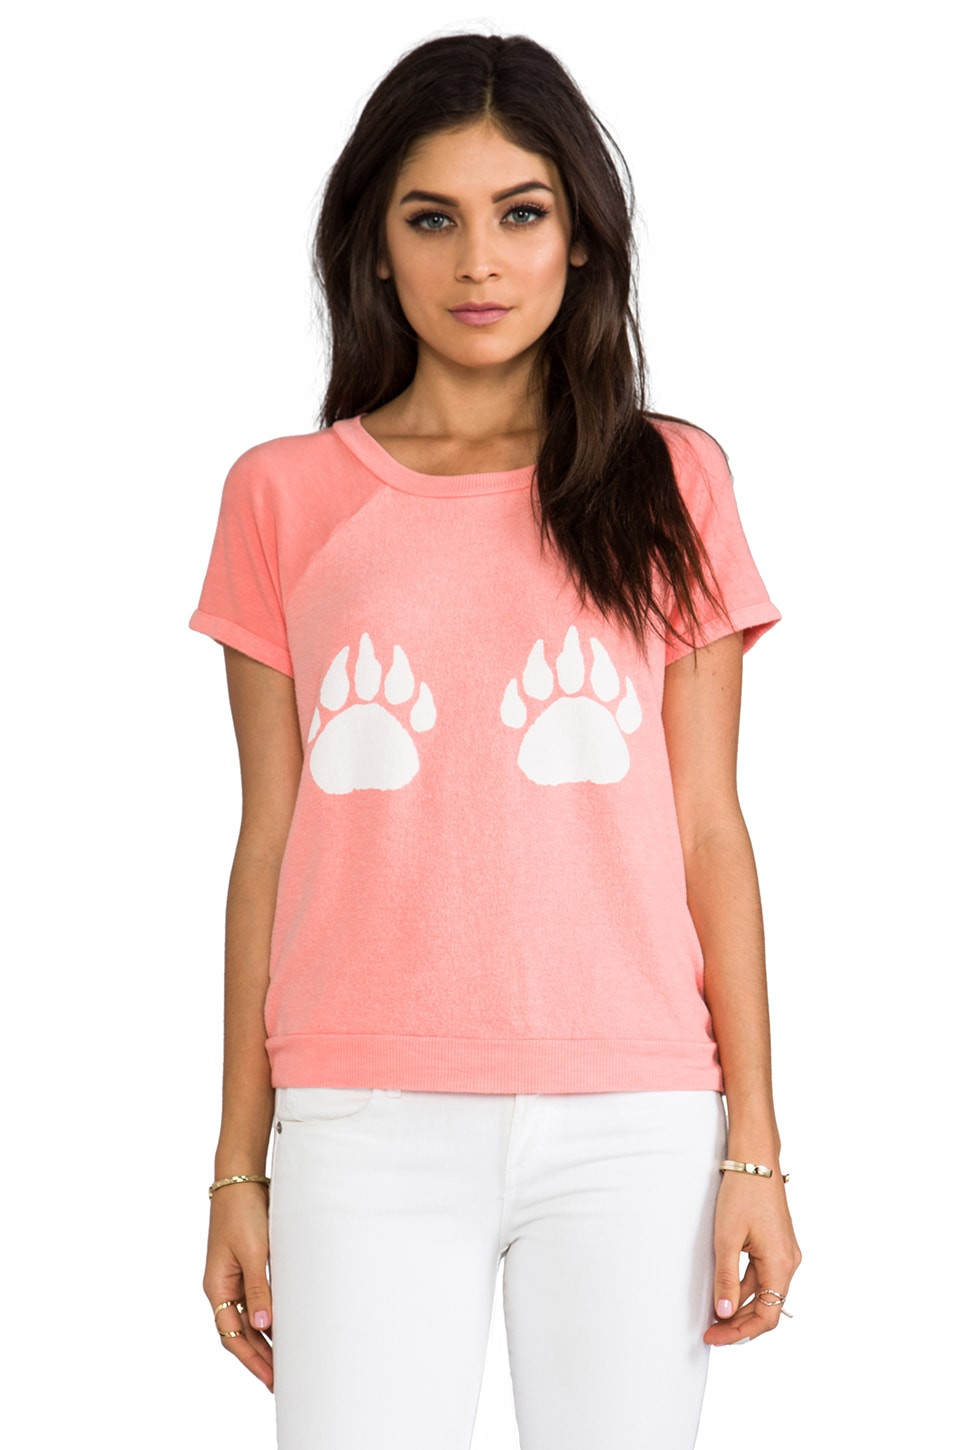 Wildfox Couture Paws Camden Top in 70's Lipstick